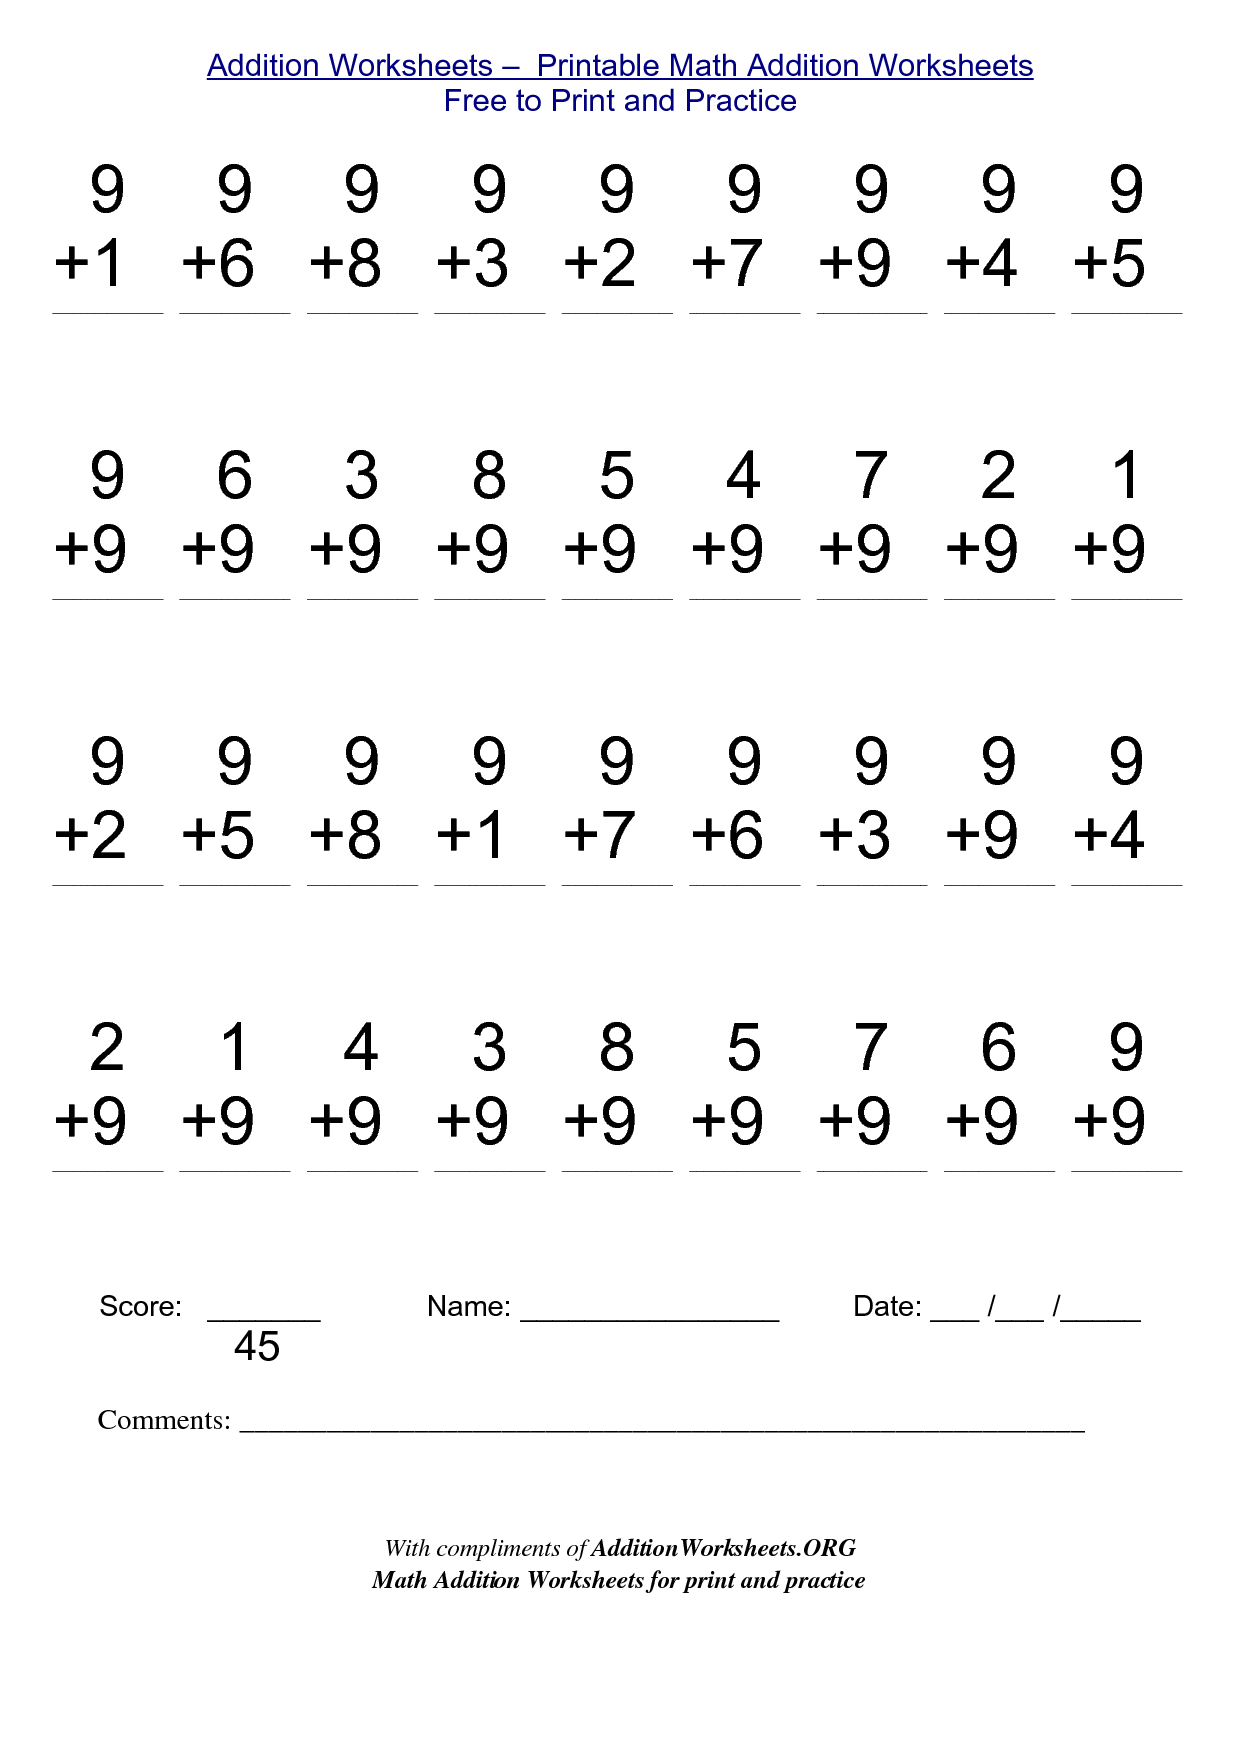 Math Worksheets for Free to Print Alot ME – Free Addition Math Worksheets